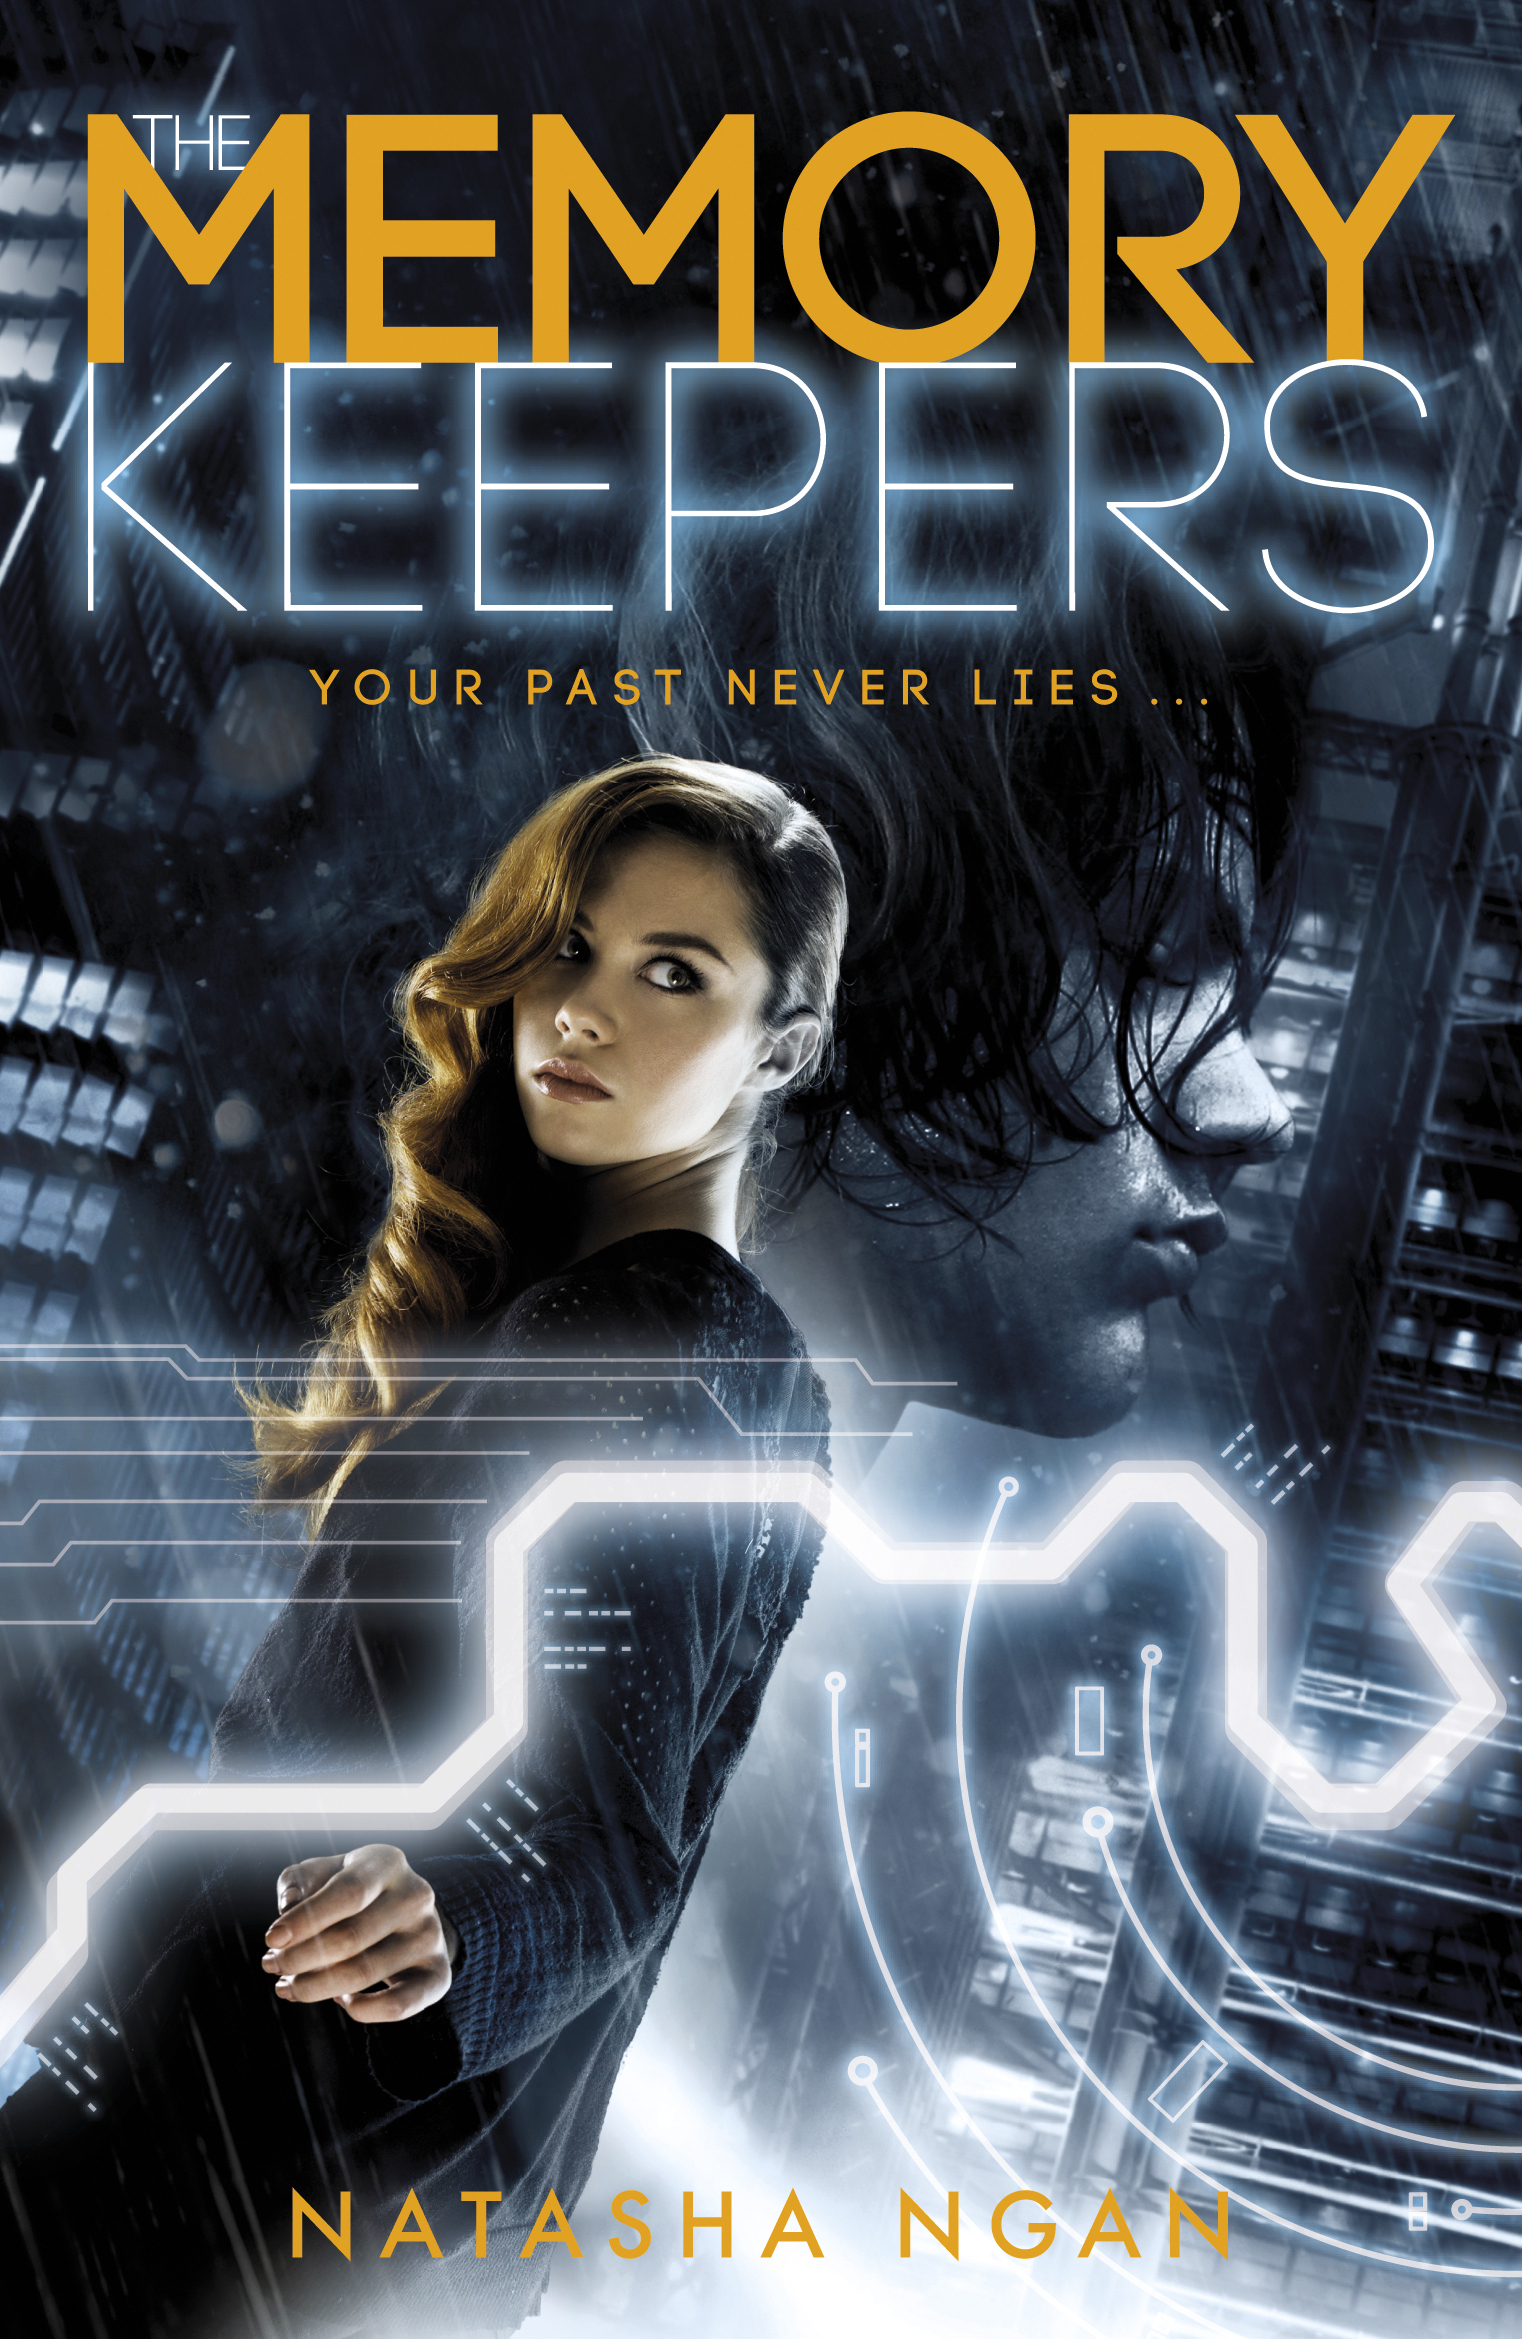 The Memory Keepers Extract